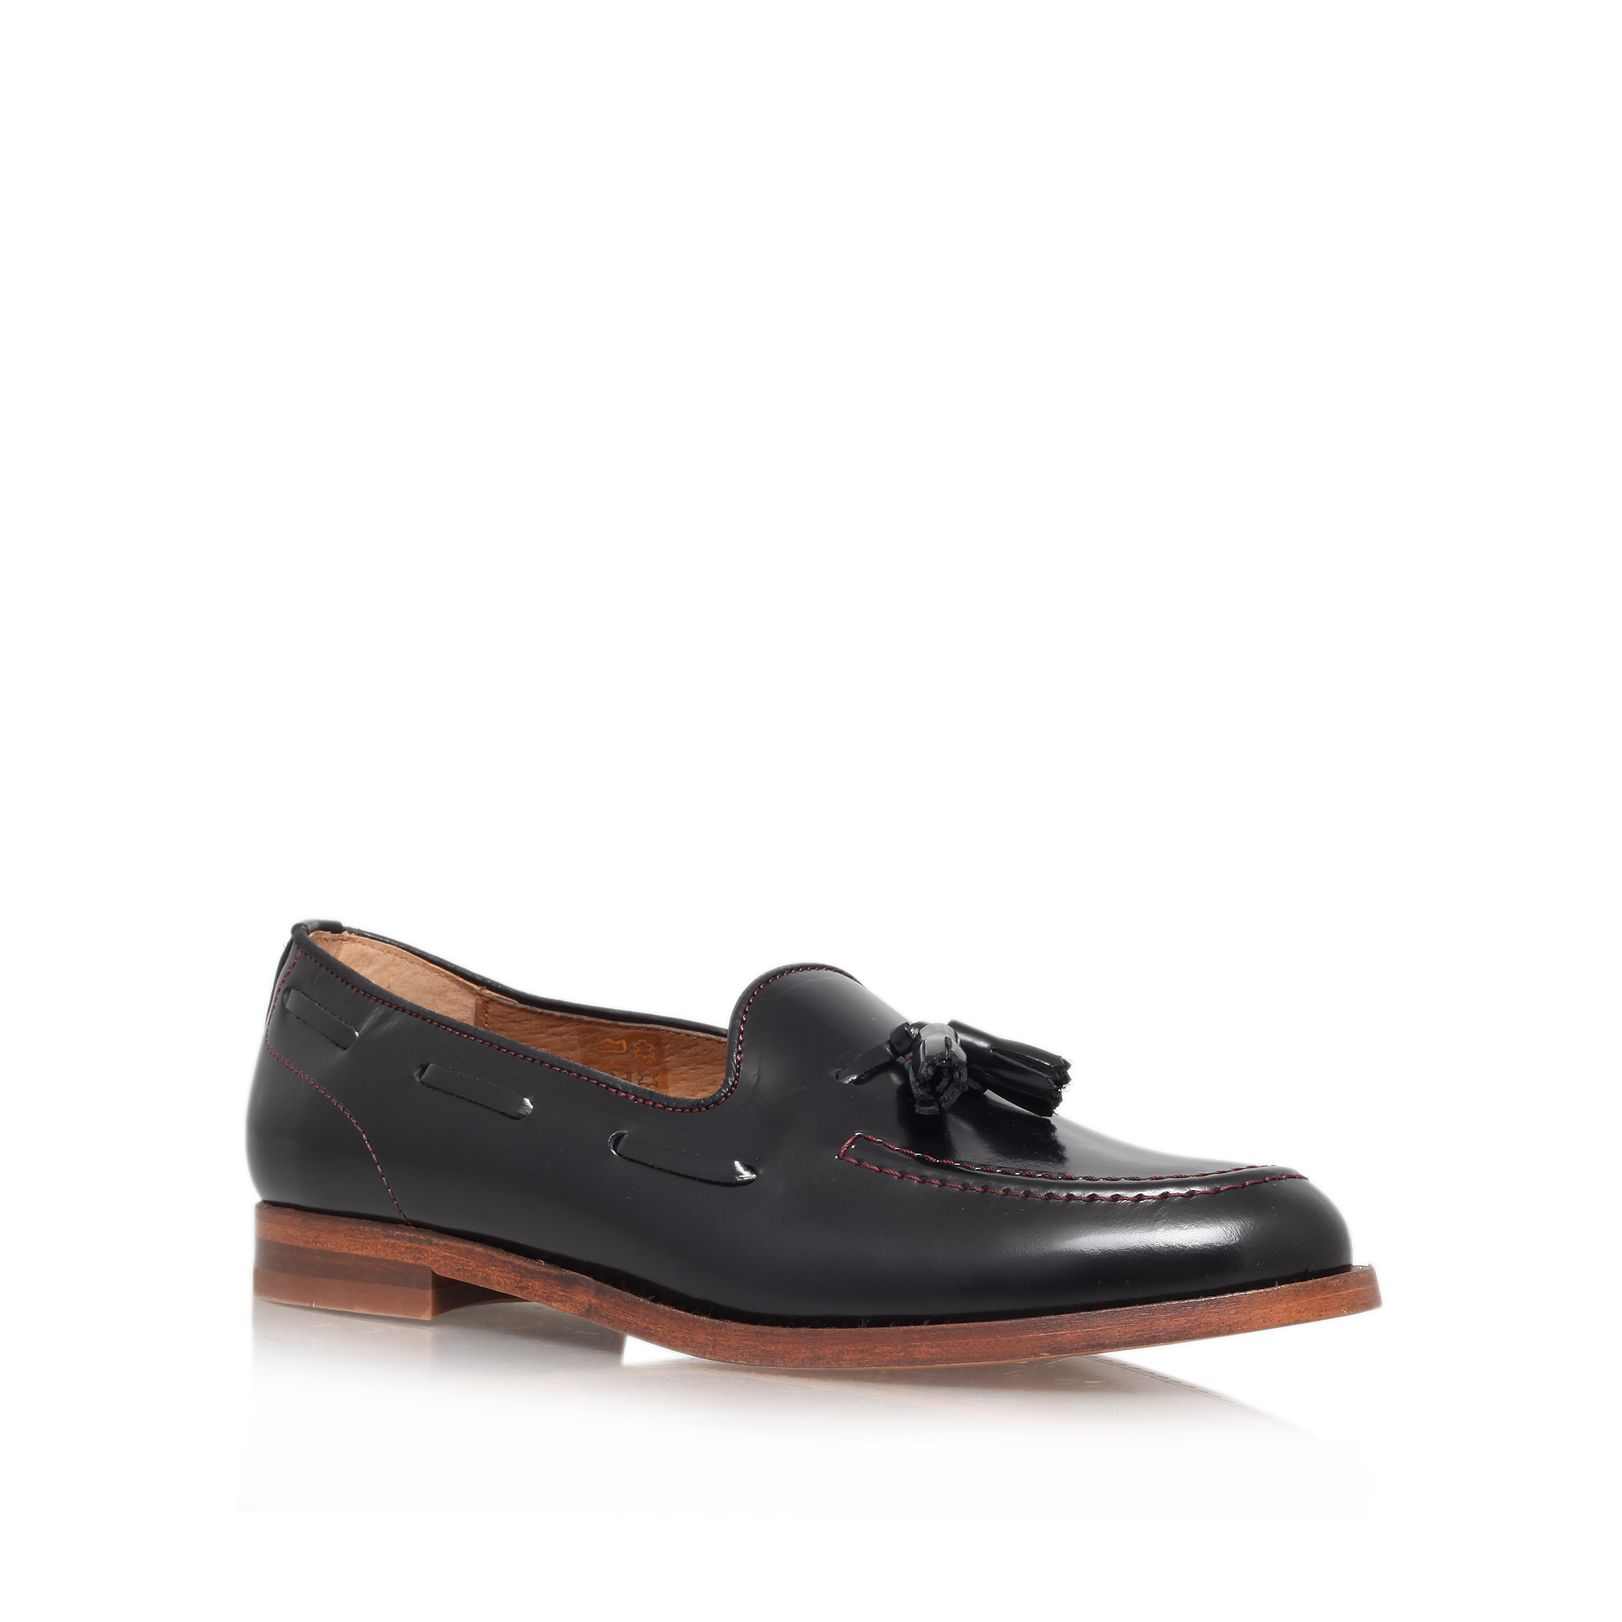 Stanford leather loafer